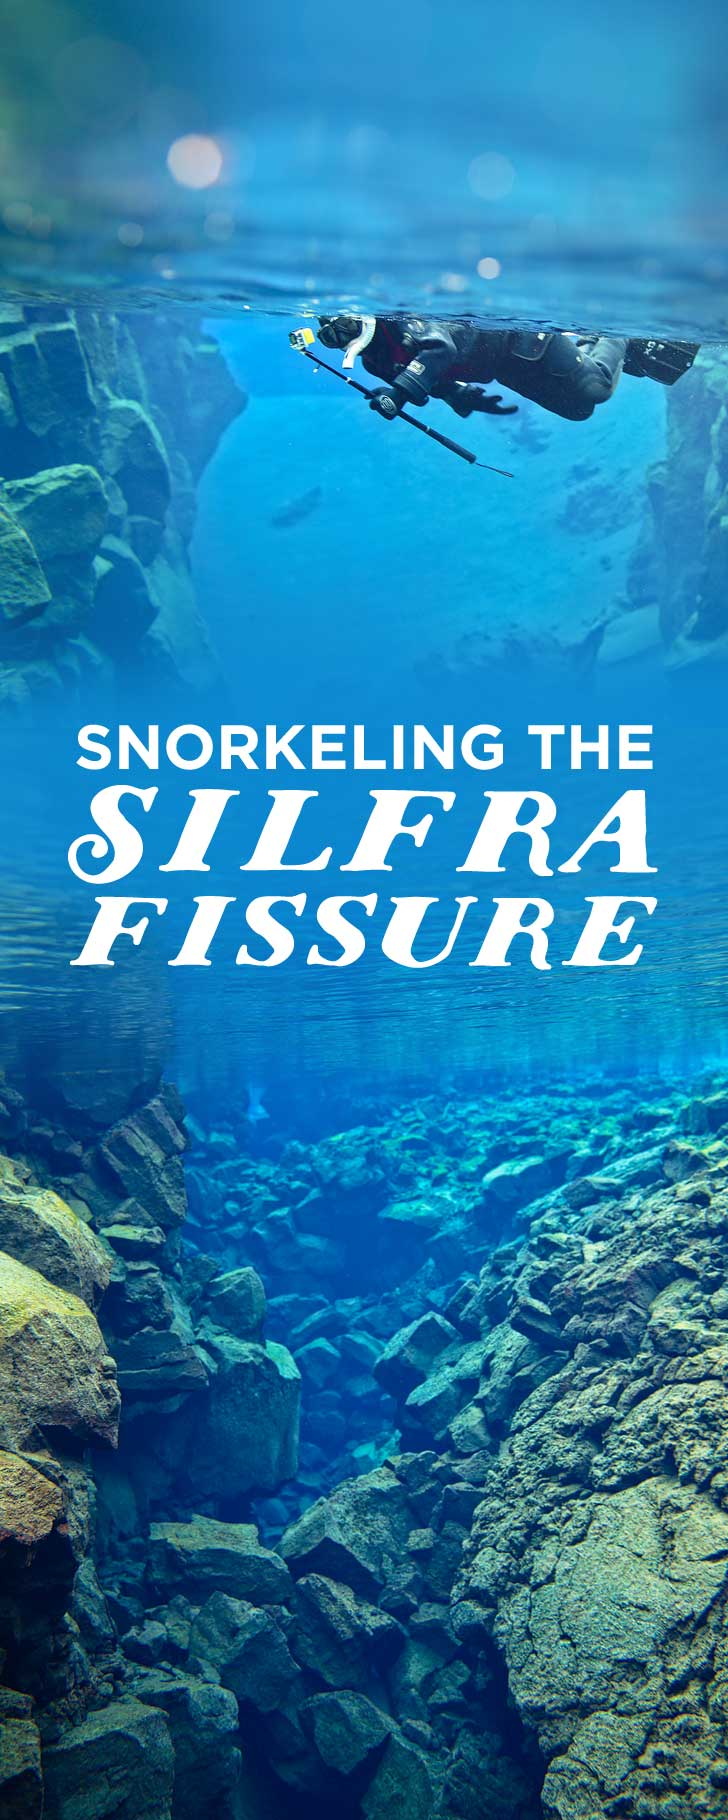 Silfra Snorkeling in Thingvellir National Park Iceland - Snorkel in the Silfra fissure between the North American and Eurasian continental plates. The underwater visibility is over 100 m and the water is pristine and drinkable during your dive or snorkel // localadventurer.com